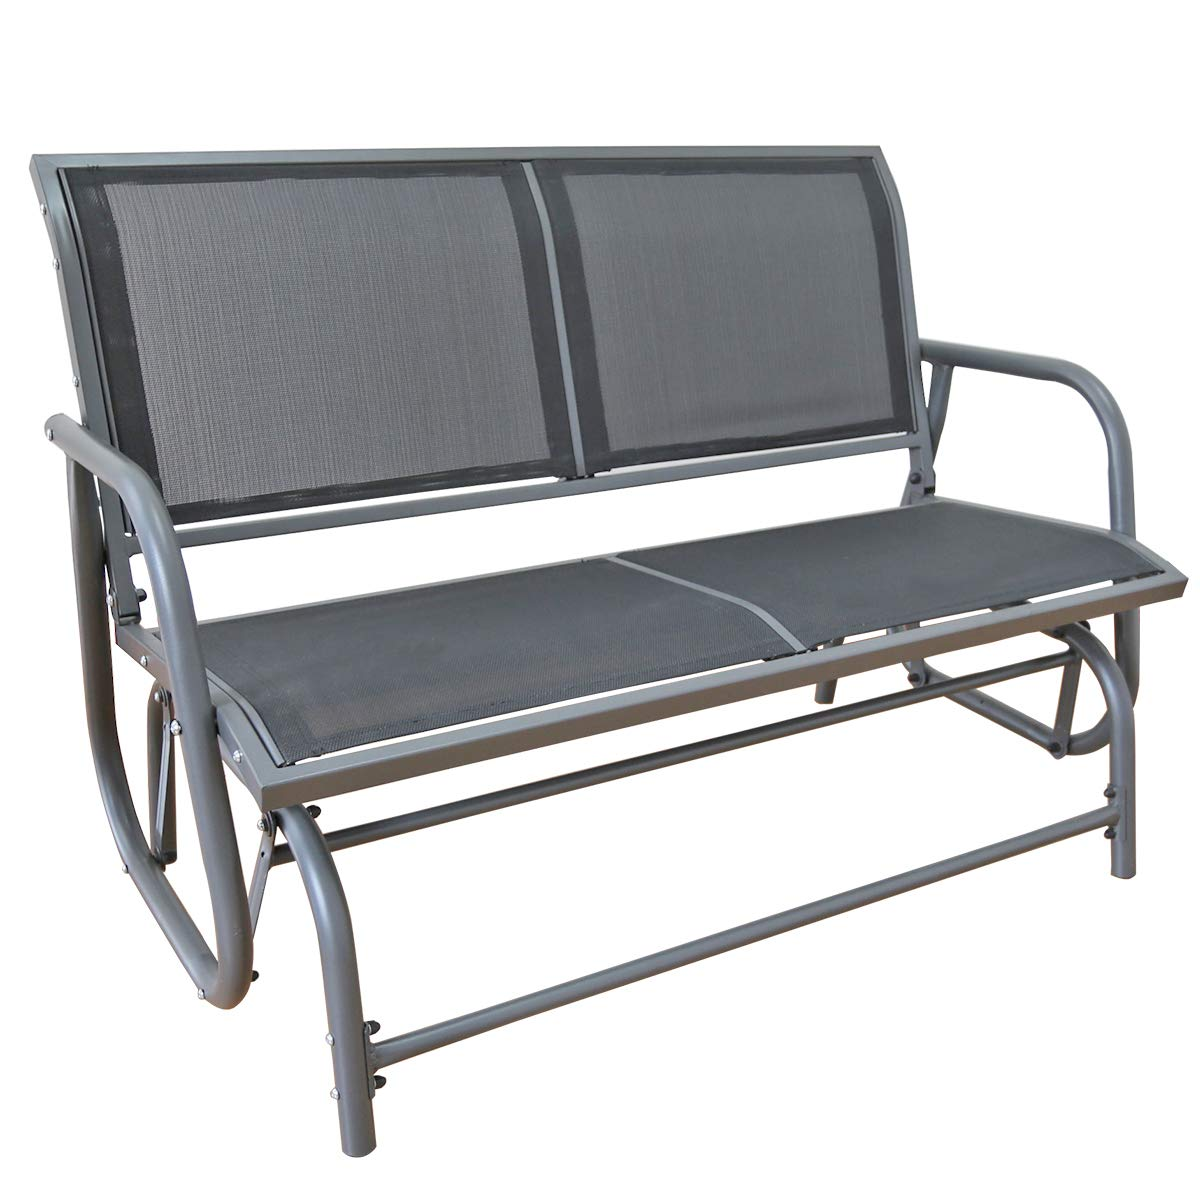 Yardeen Swing Glider Chair Patio Loveseat Rocking Bench Garden Porch Seating, Double Grey Mesh